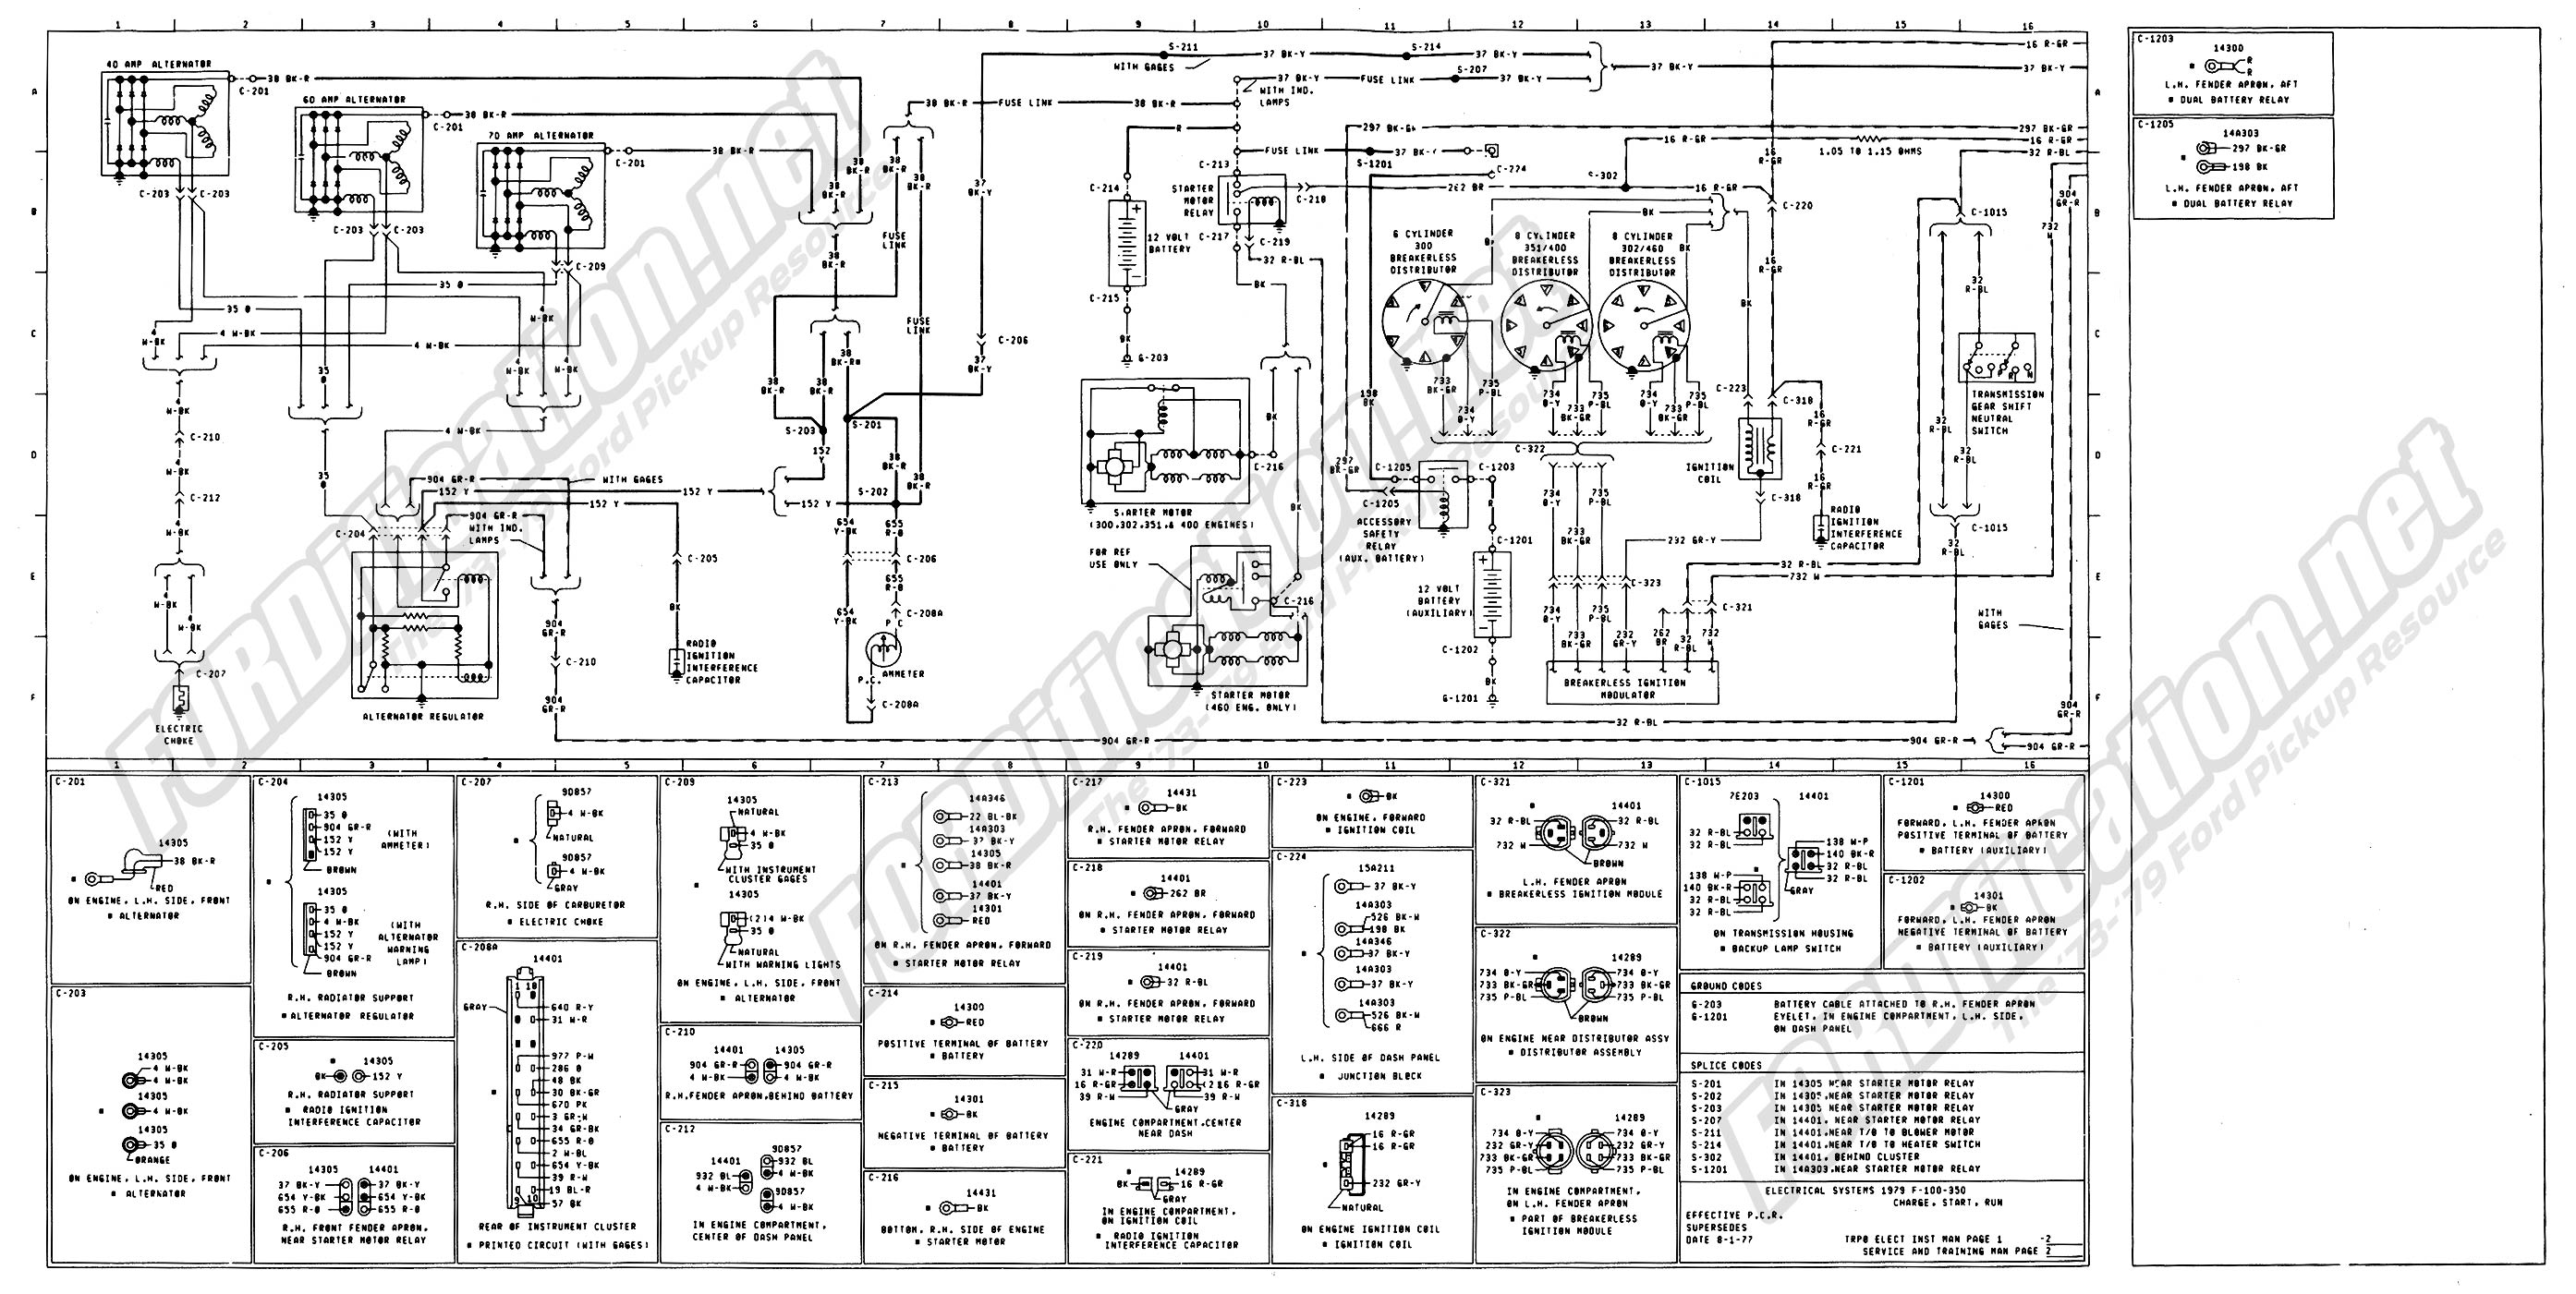 wiring_79master_2of9 1973 1979 ford truck wiring diagrams & schematics fordification net wiring diagram for dummies at eliteediting.co